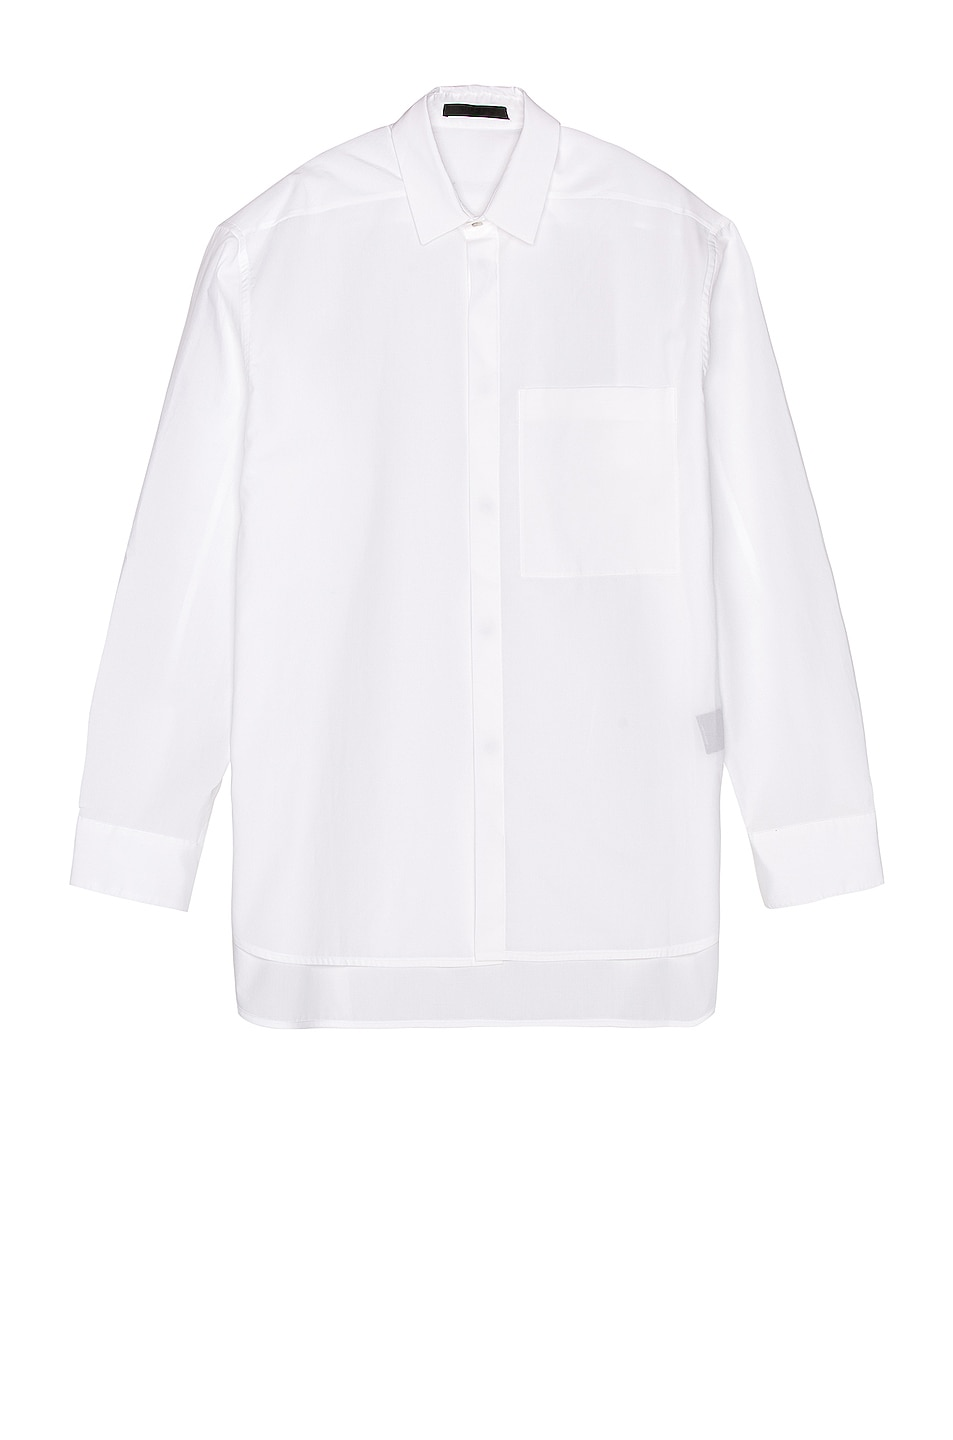 Fear of God Easy Collared Shirt